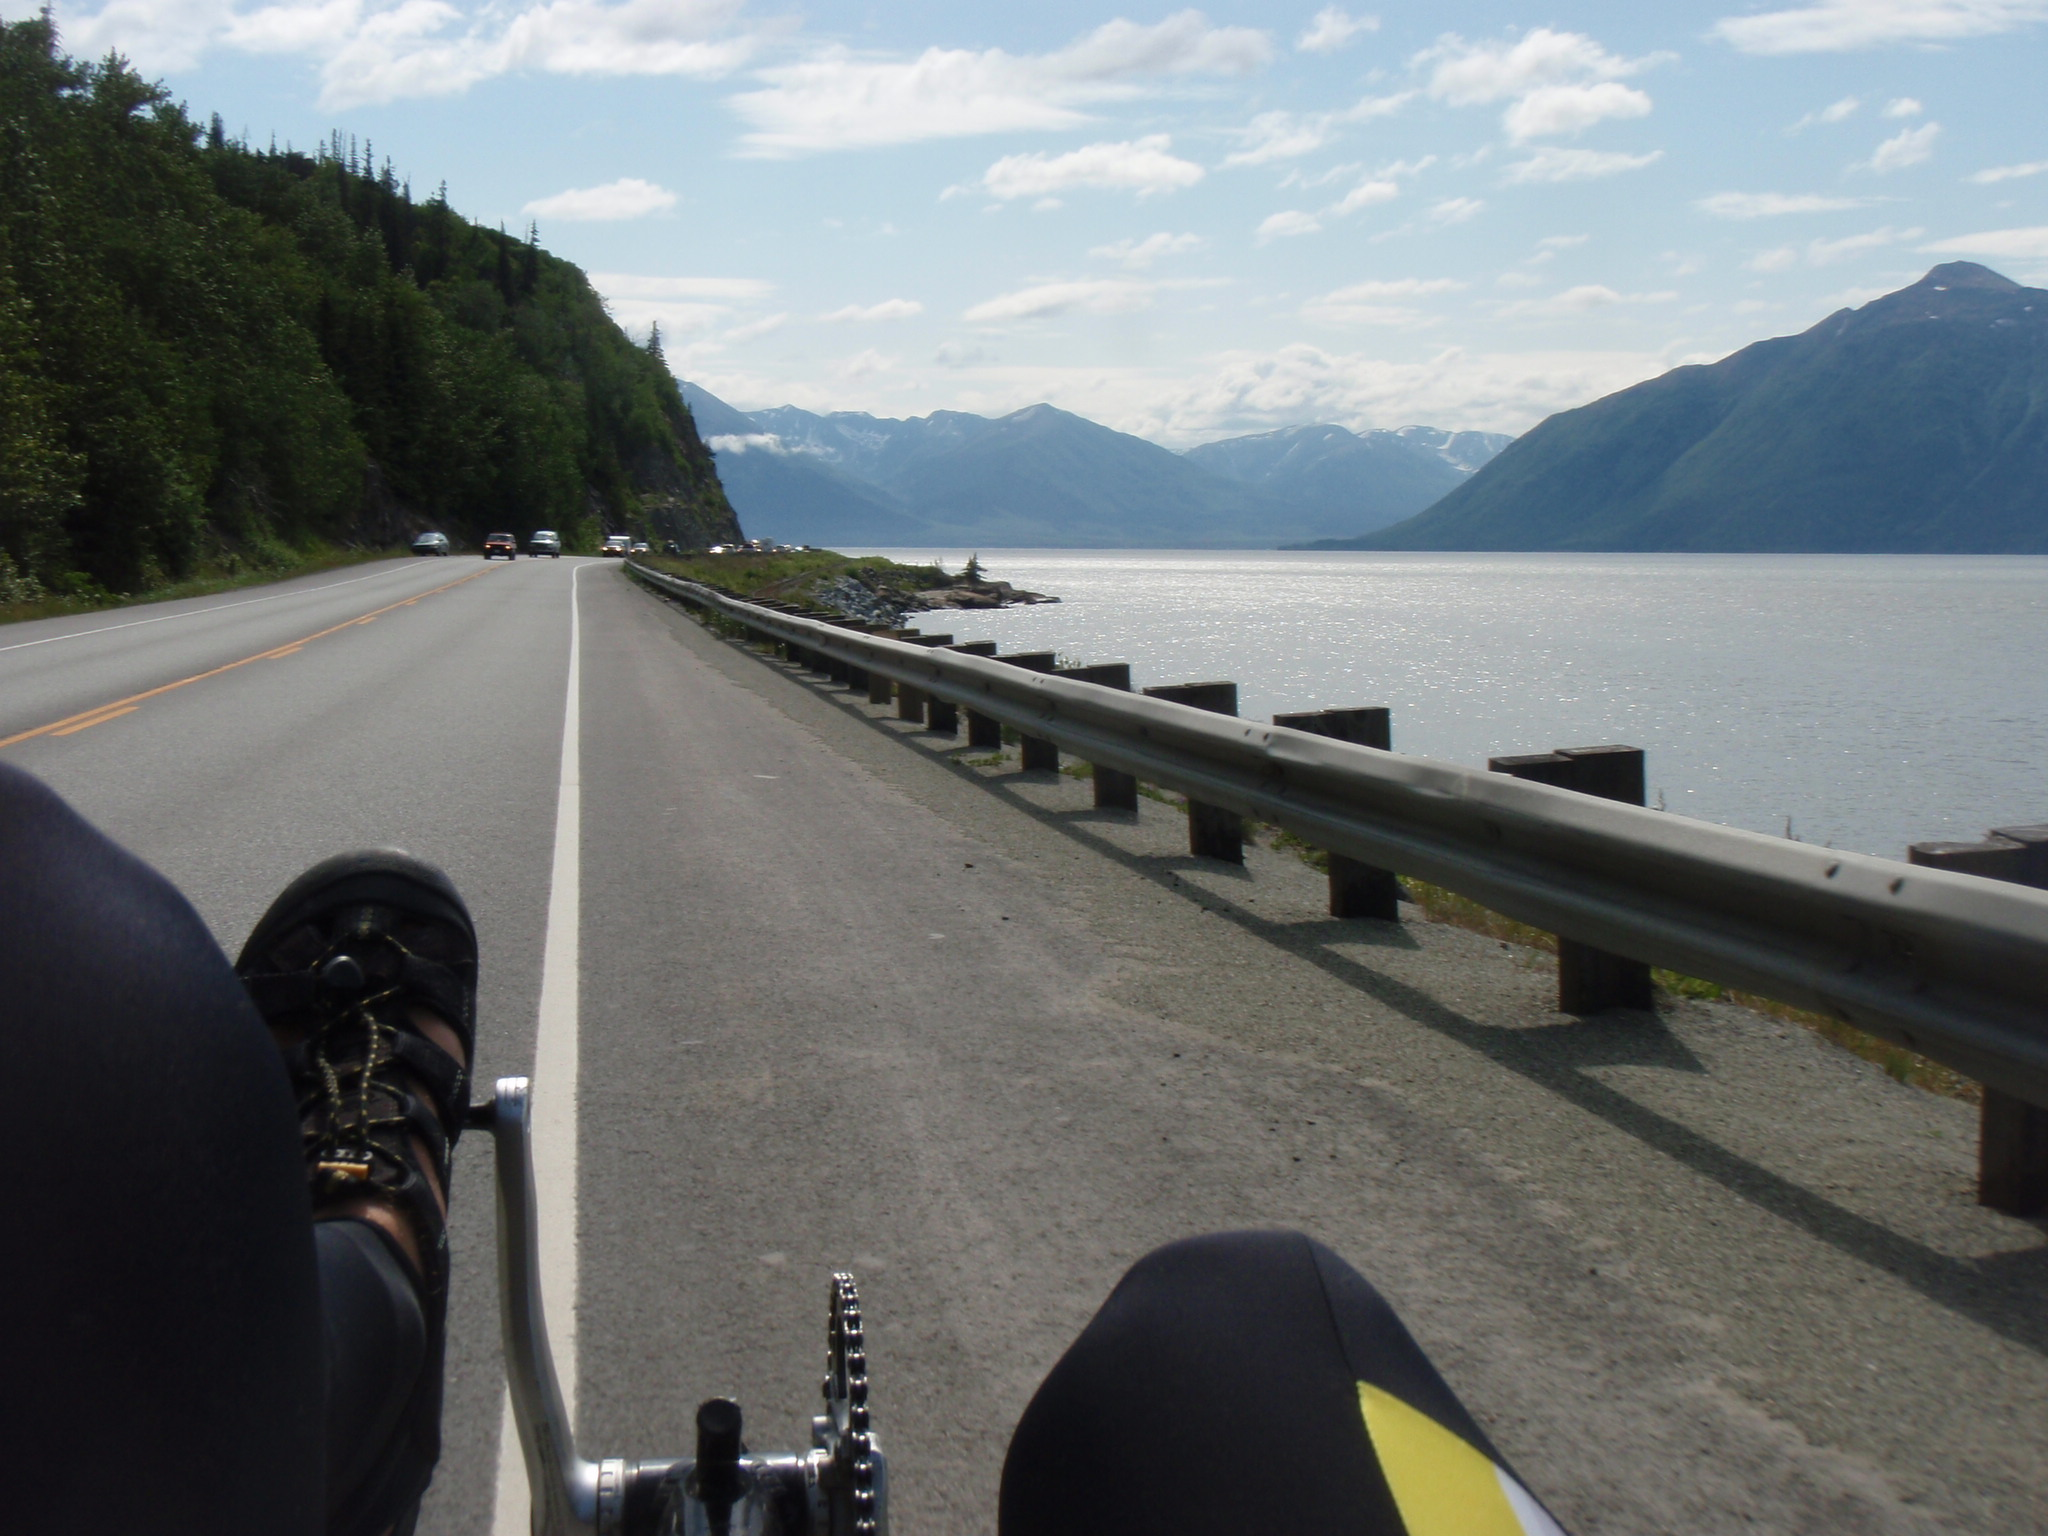 Riding along the Seward Highway South of Anchorage